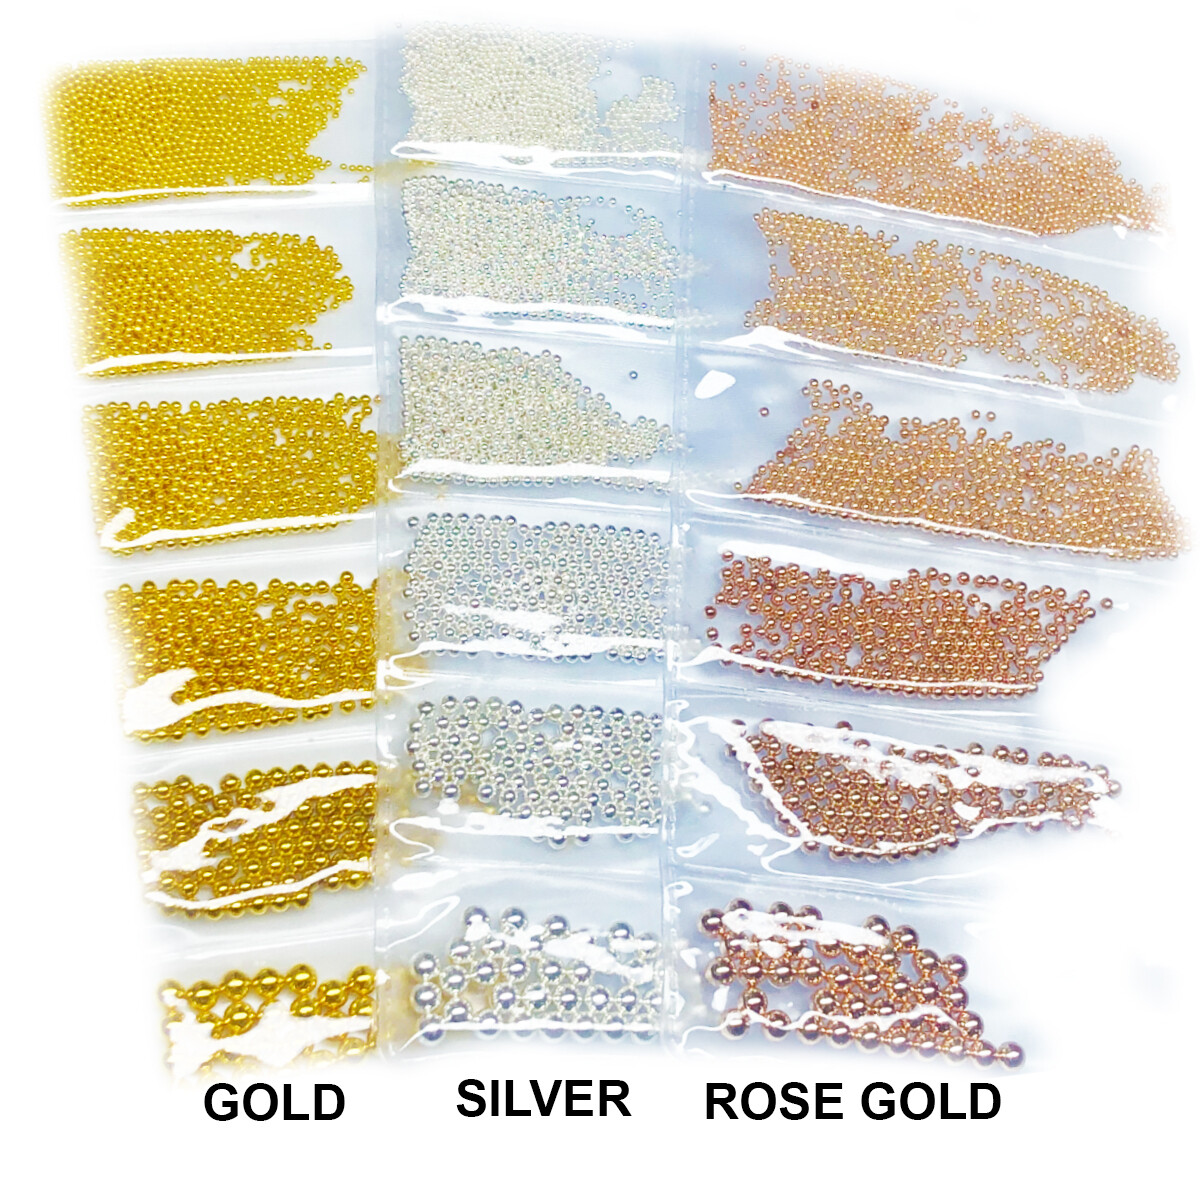 GOLD, SILVER AND ROSE GOLD NAIL ART BEADS 3 PACKS